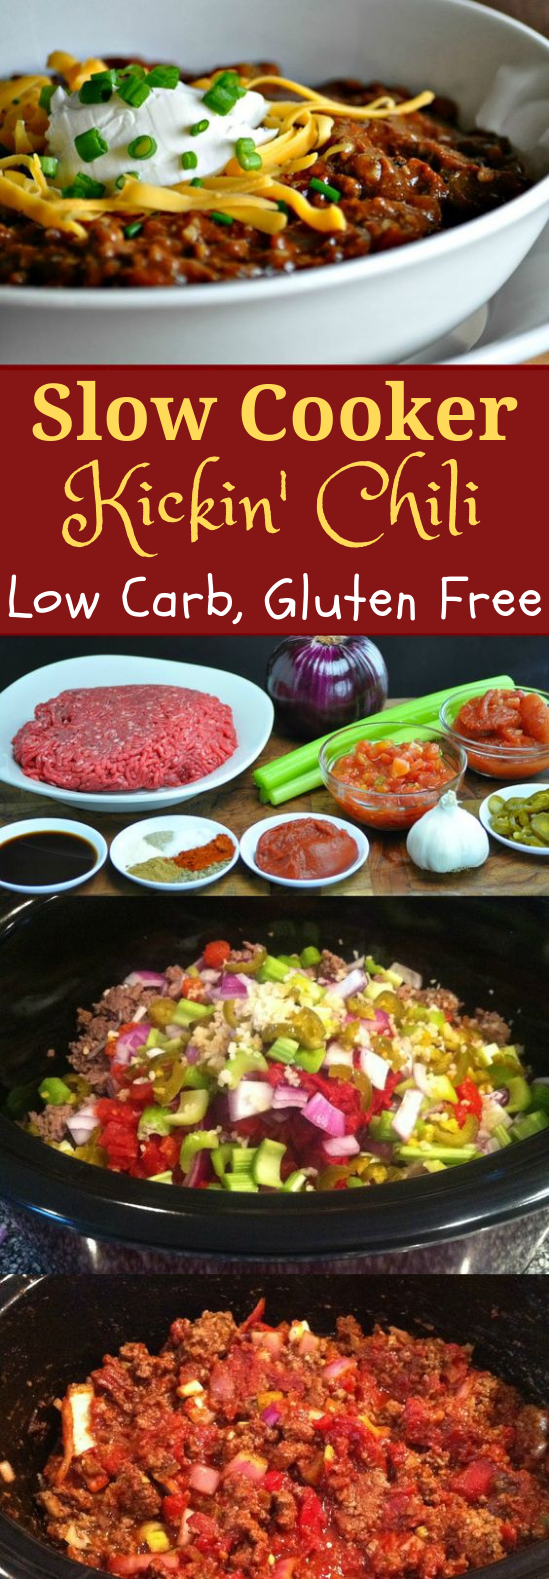 SLOW COOKER KICKIN' CHILI – LOW CARB, GLUTEN FREE #LowCarb #DietRecipe